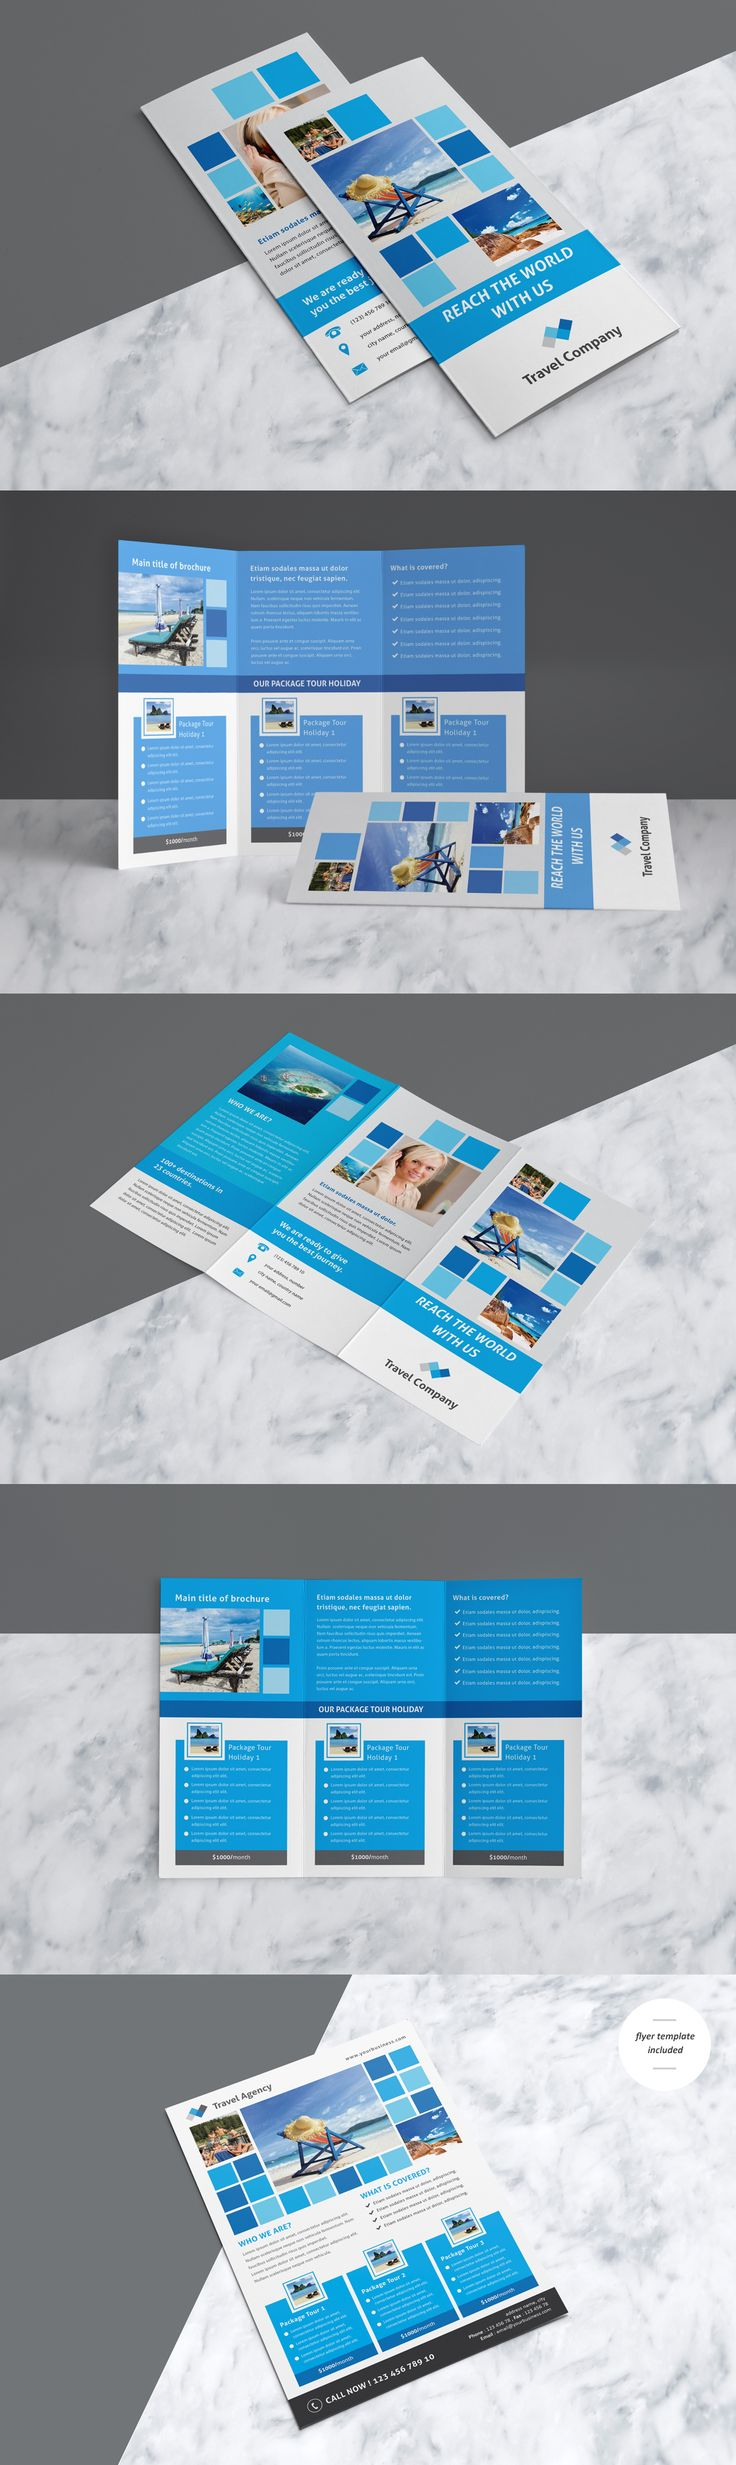 Professional & Creative Travel Trifold Brochure With Flyer Template Included - AI, EPS